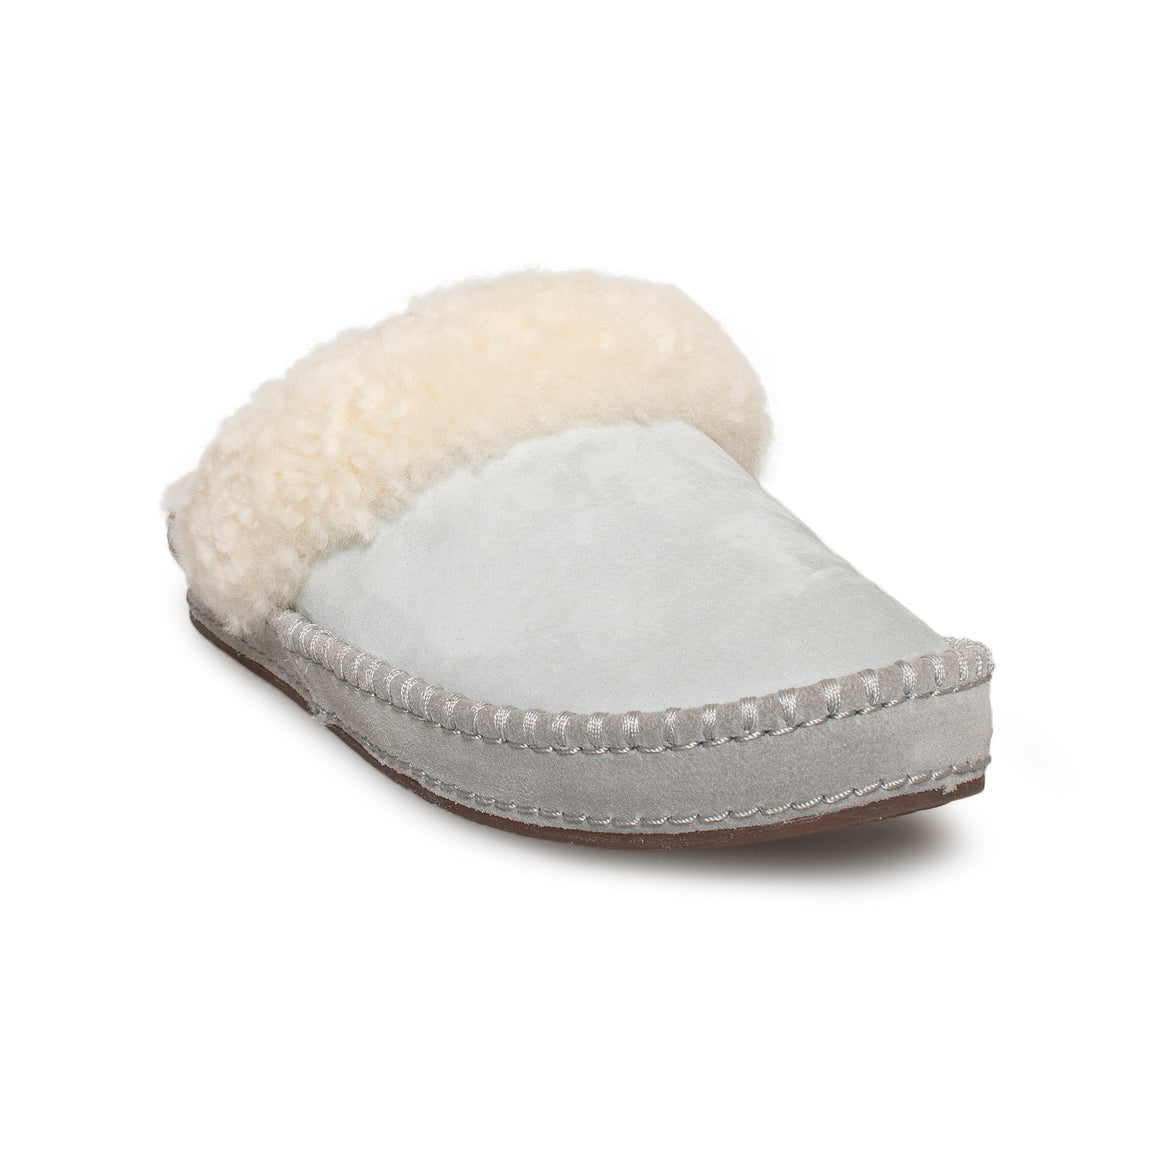 UGG Aira Iceberg Slippers - Women's